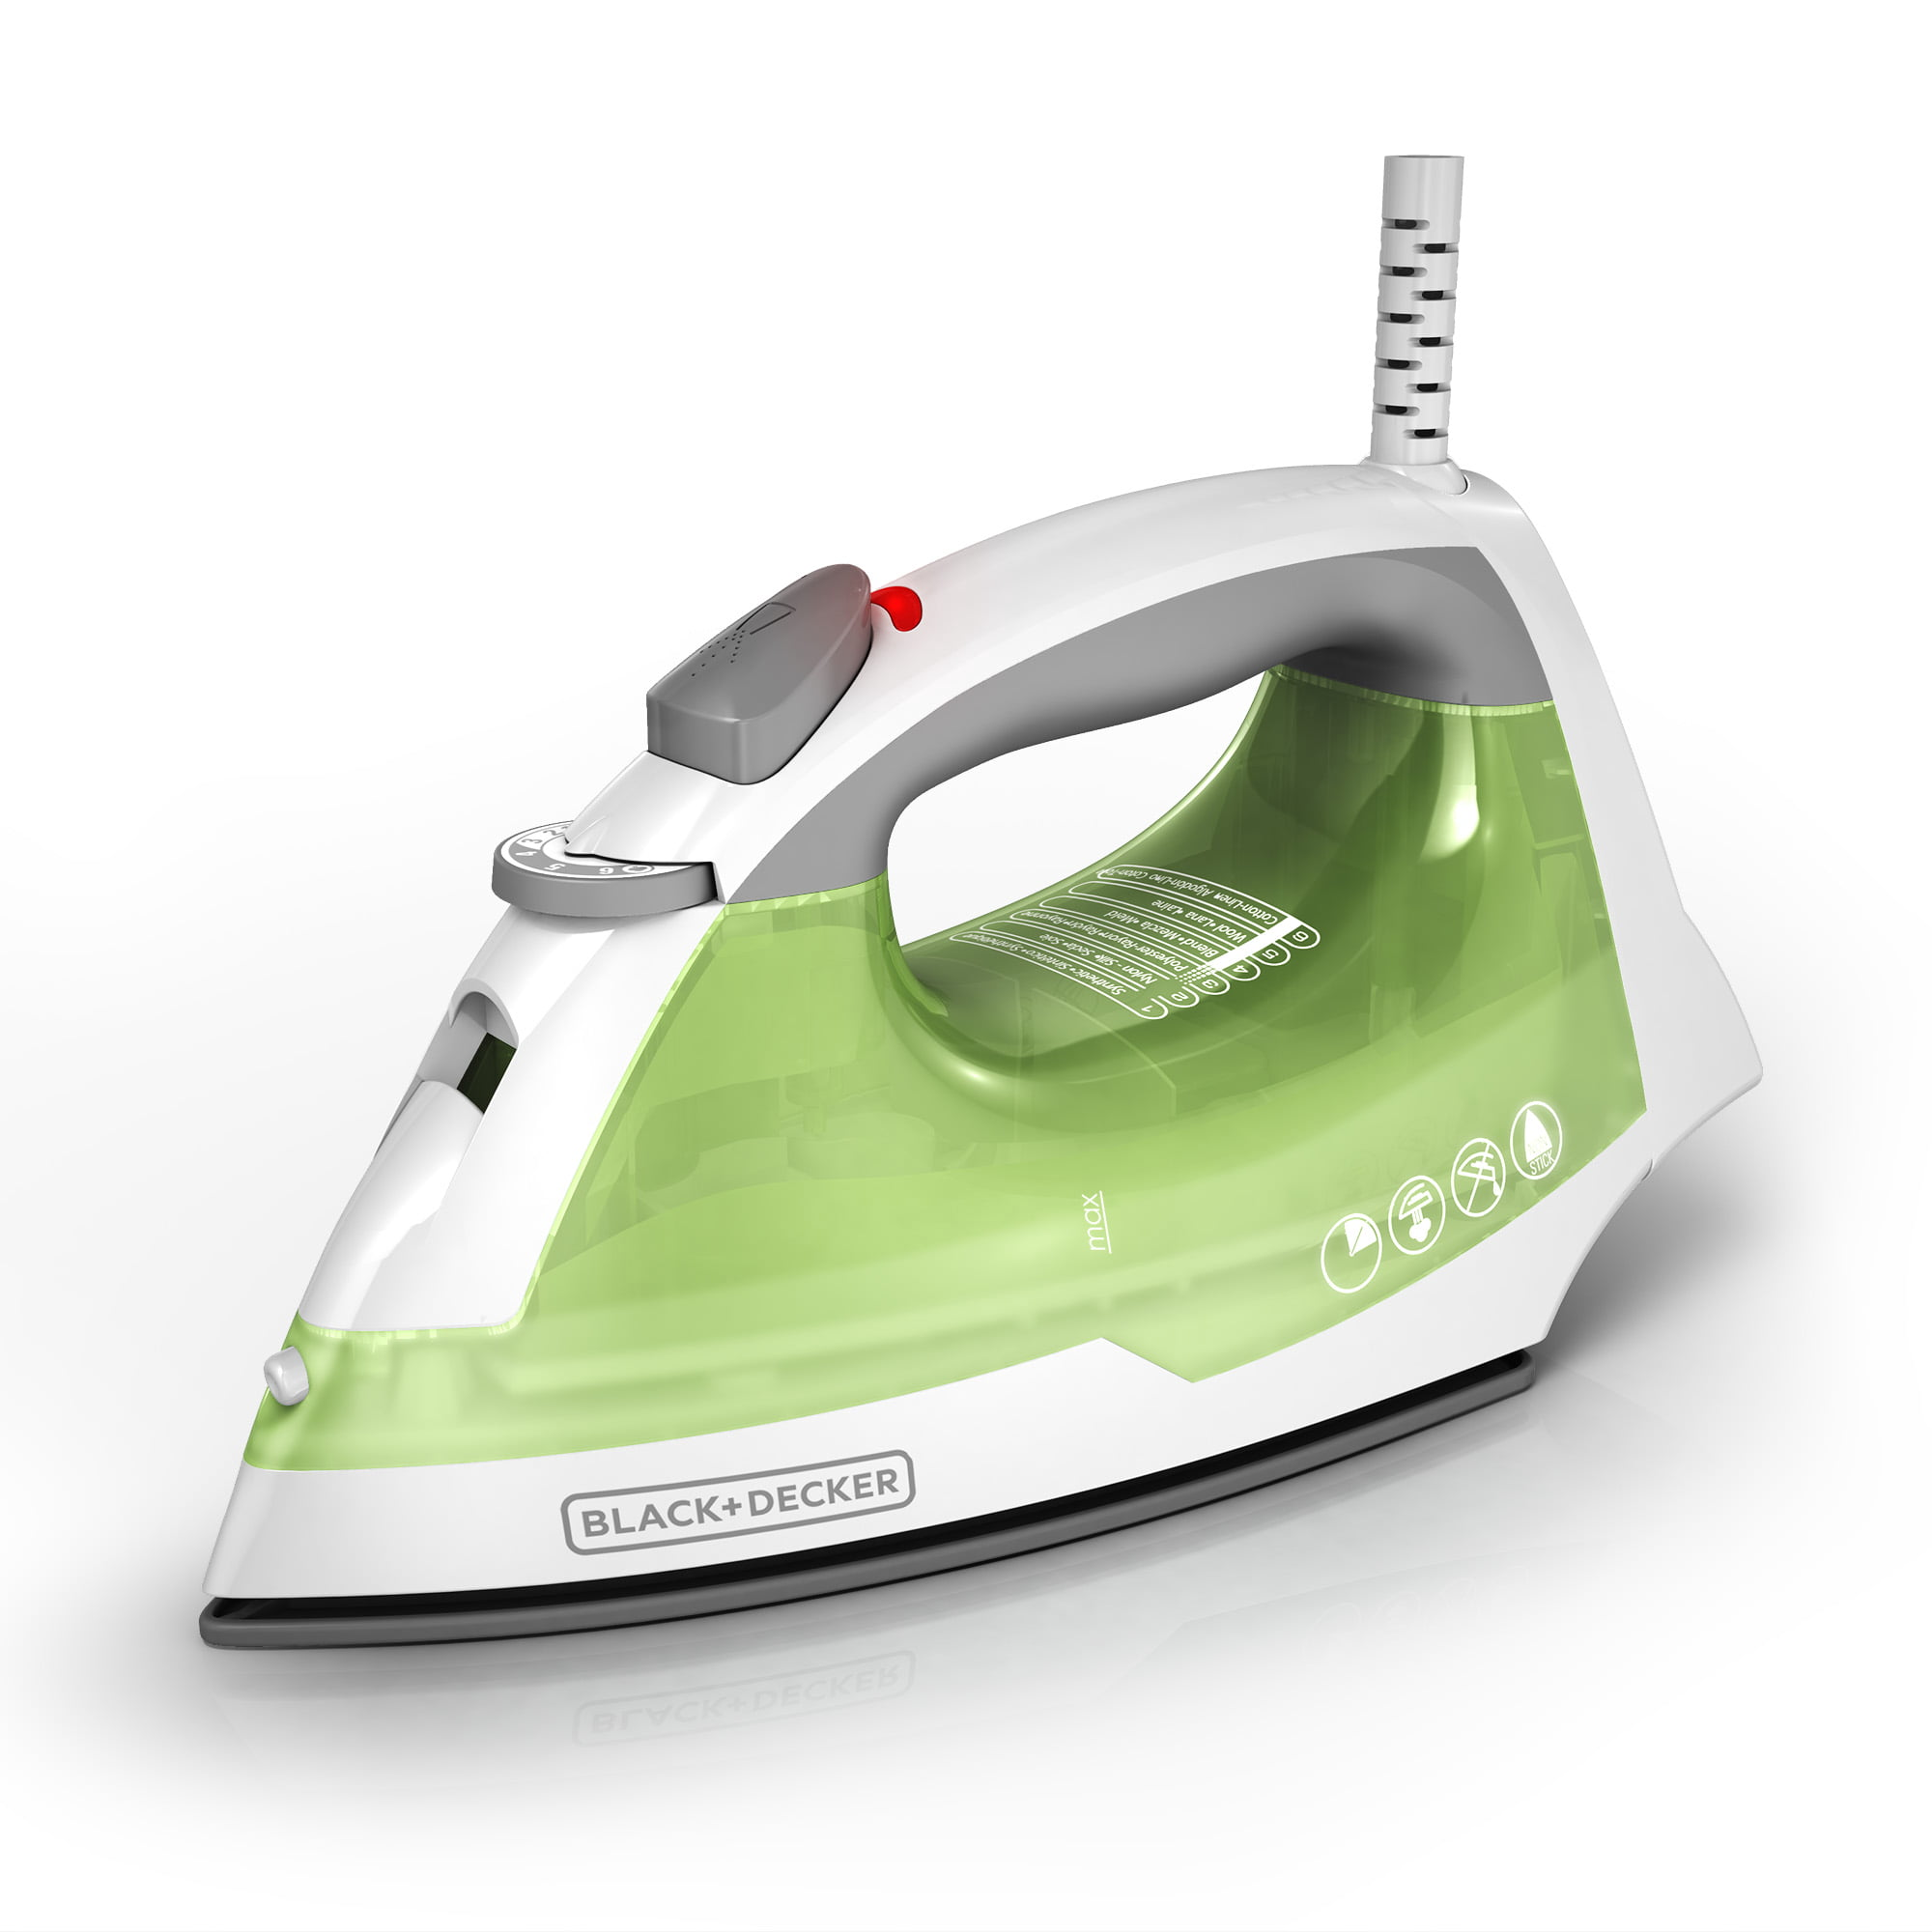 Buy Black Decker Easy Steam Anti Drip Compact Iron Green Multi Cyclonic Bagless Vacuum Cleaner Ir02v